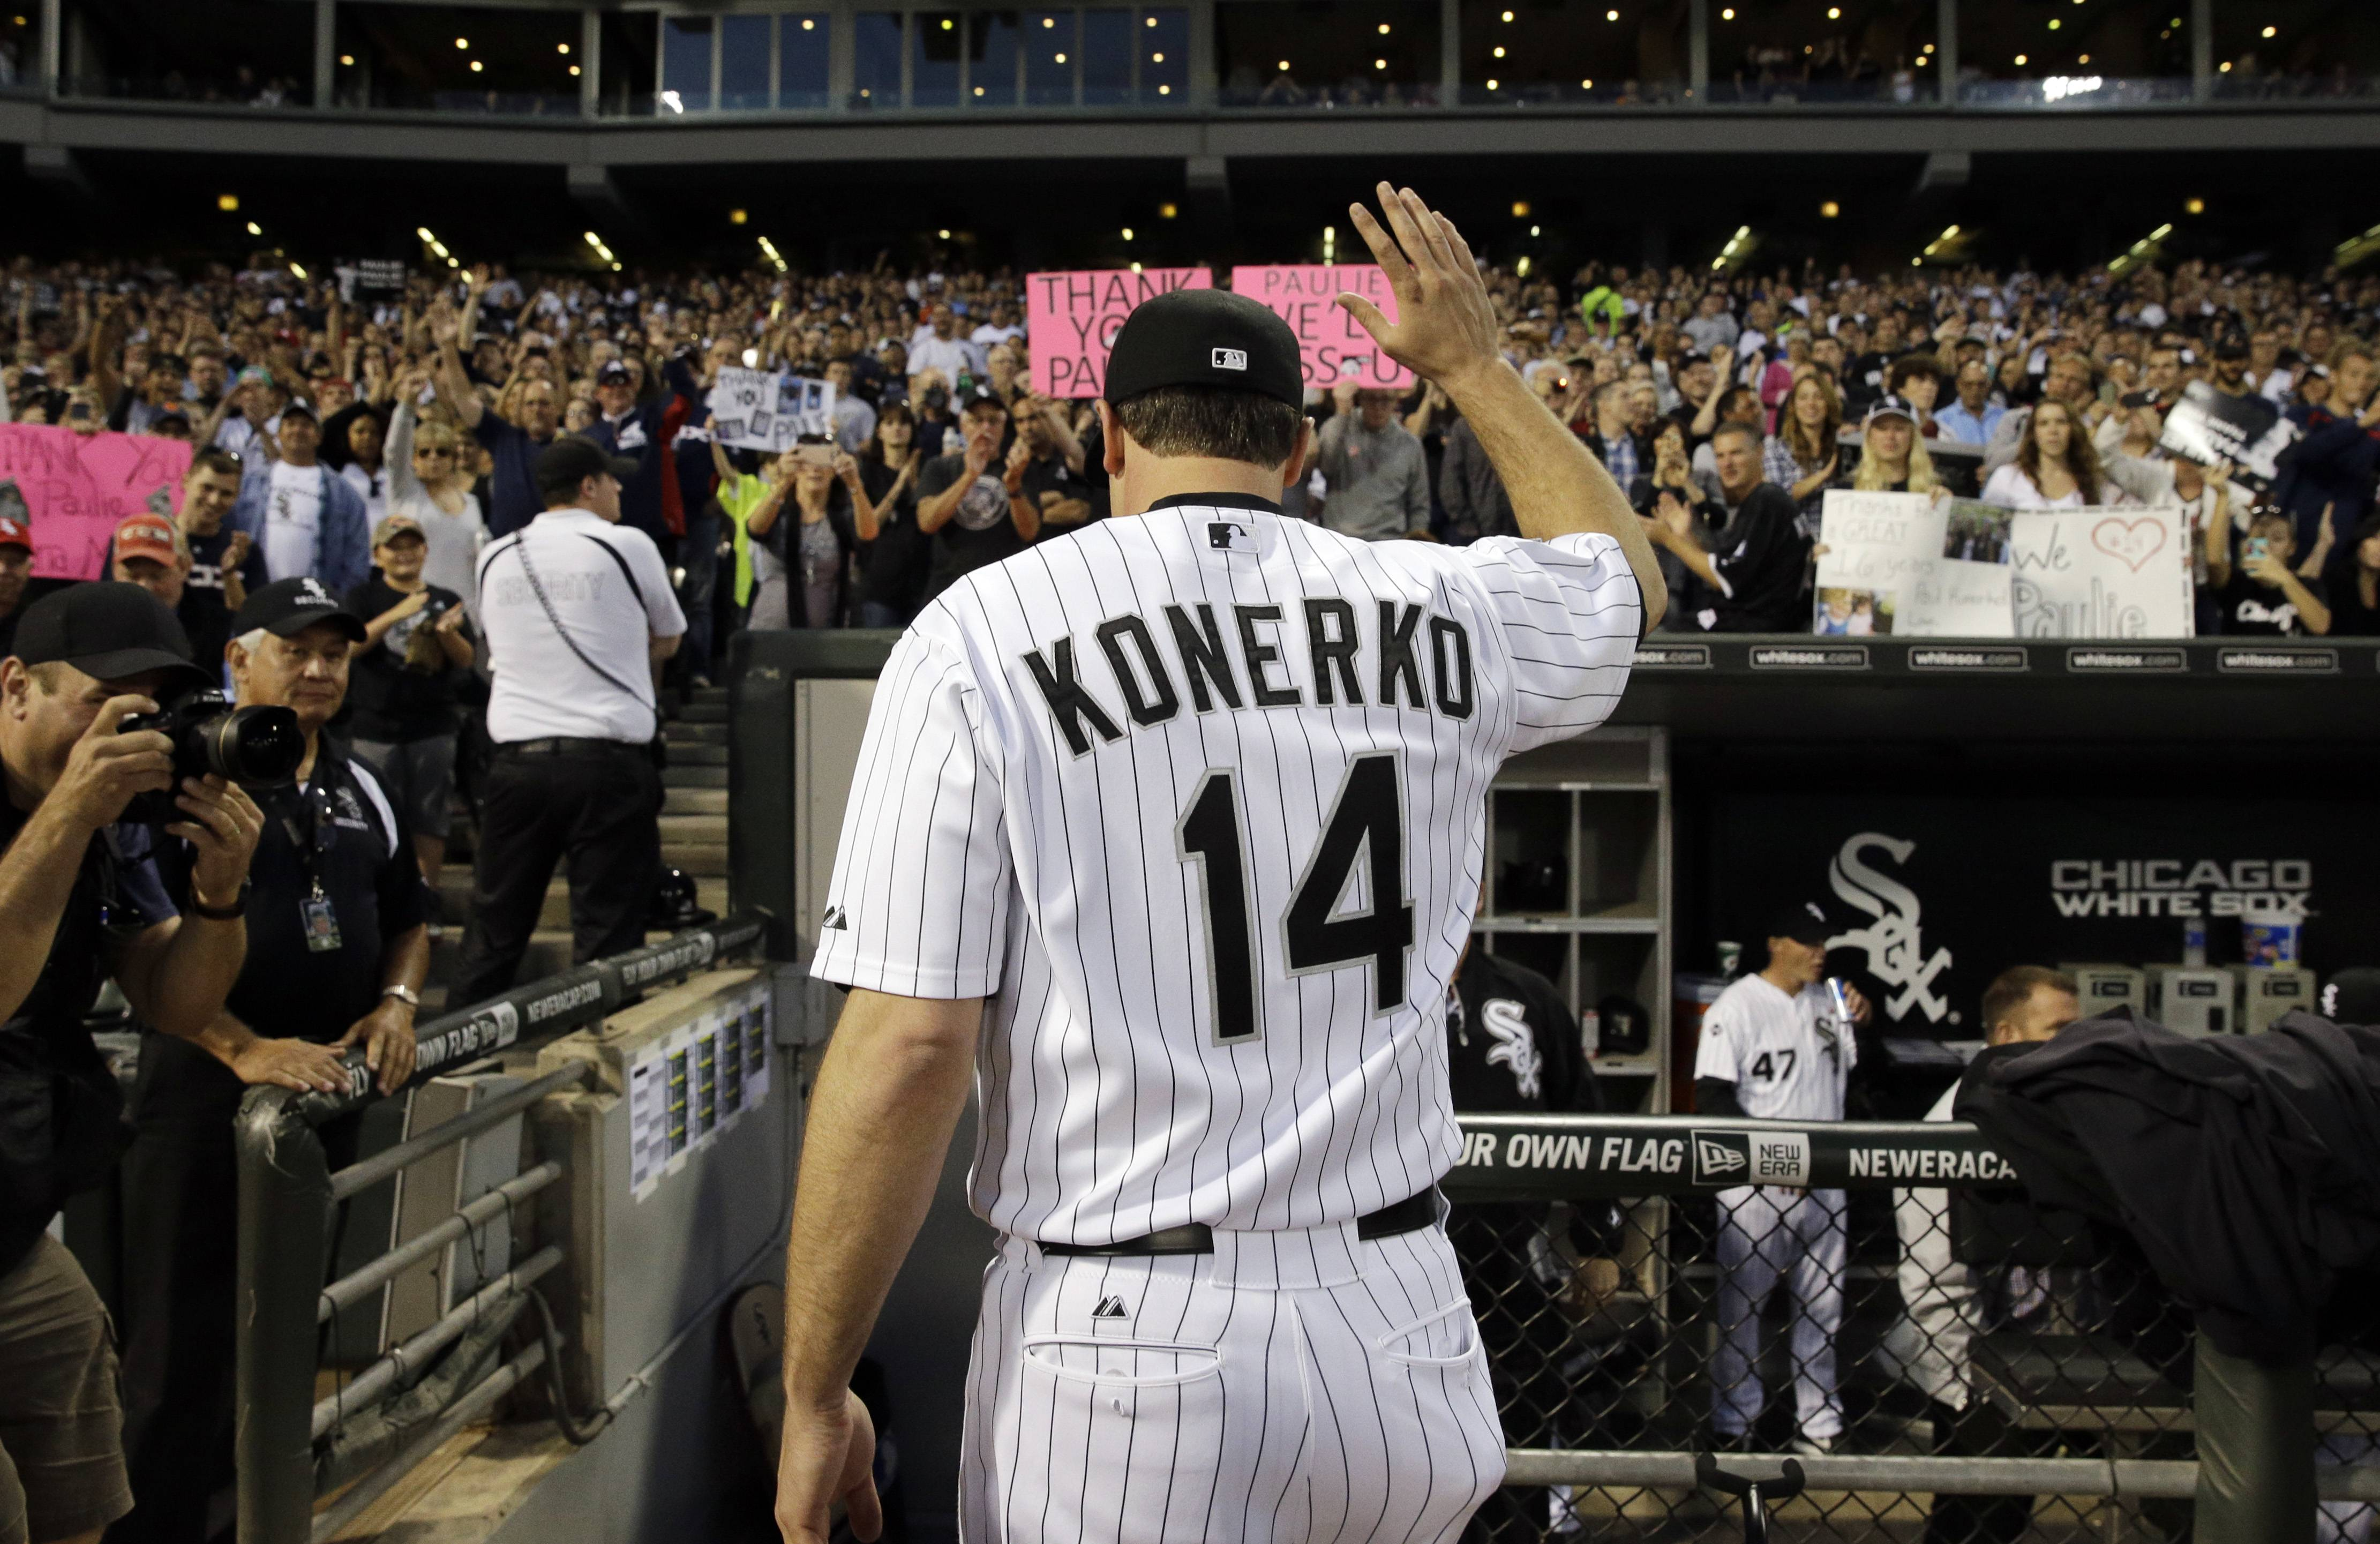 Chicago White Sox's Paul Kornerko (14) waves to the crowd as he walks to the dugout before a baseball game Saturday against the Kansas City Royals in Chicago.